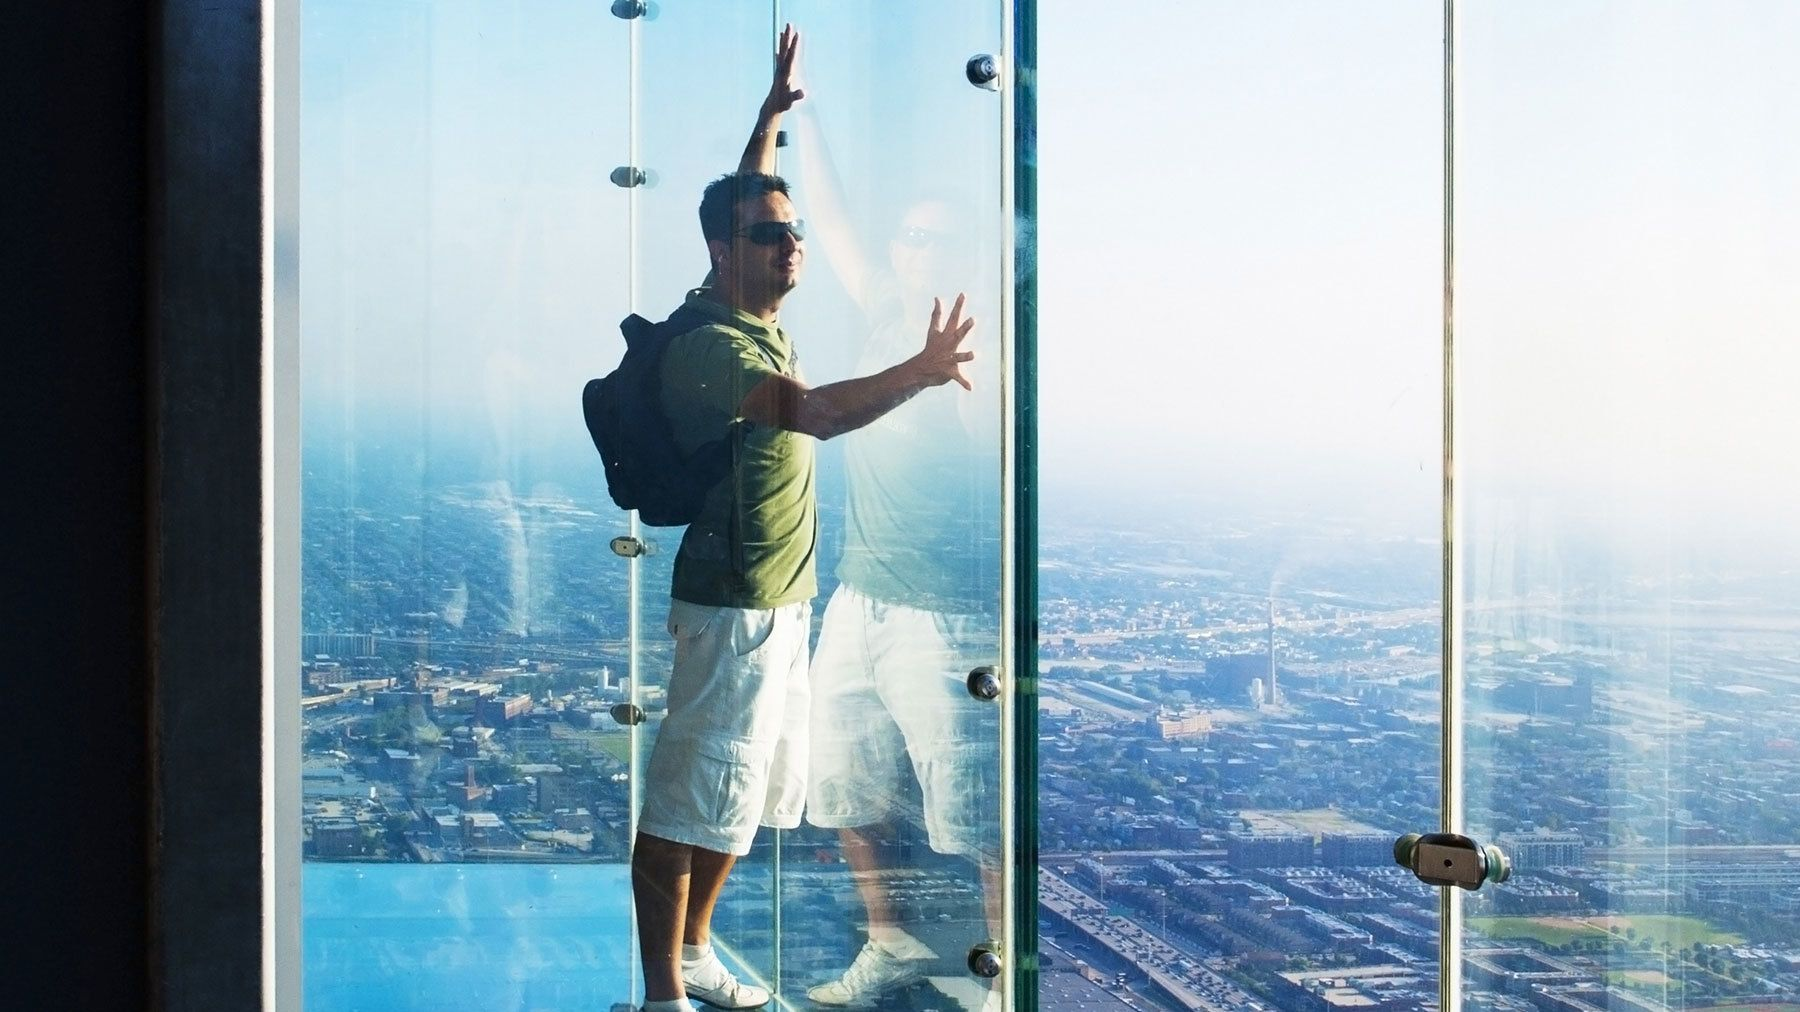 Man touching window at the sky deck in chicago